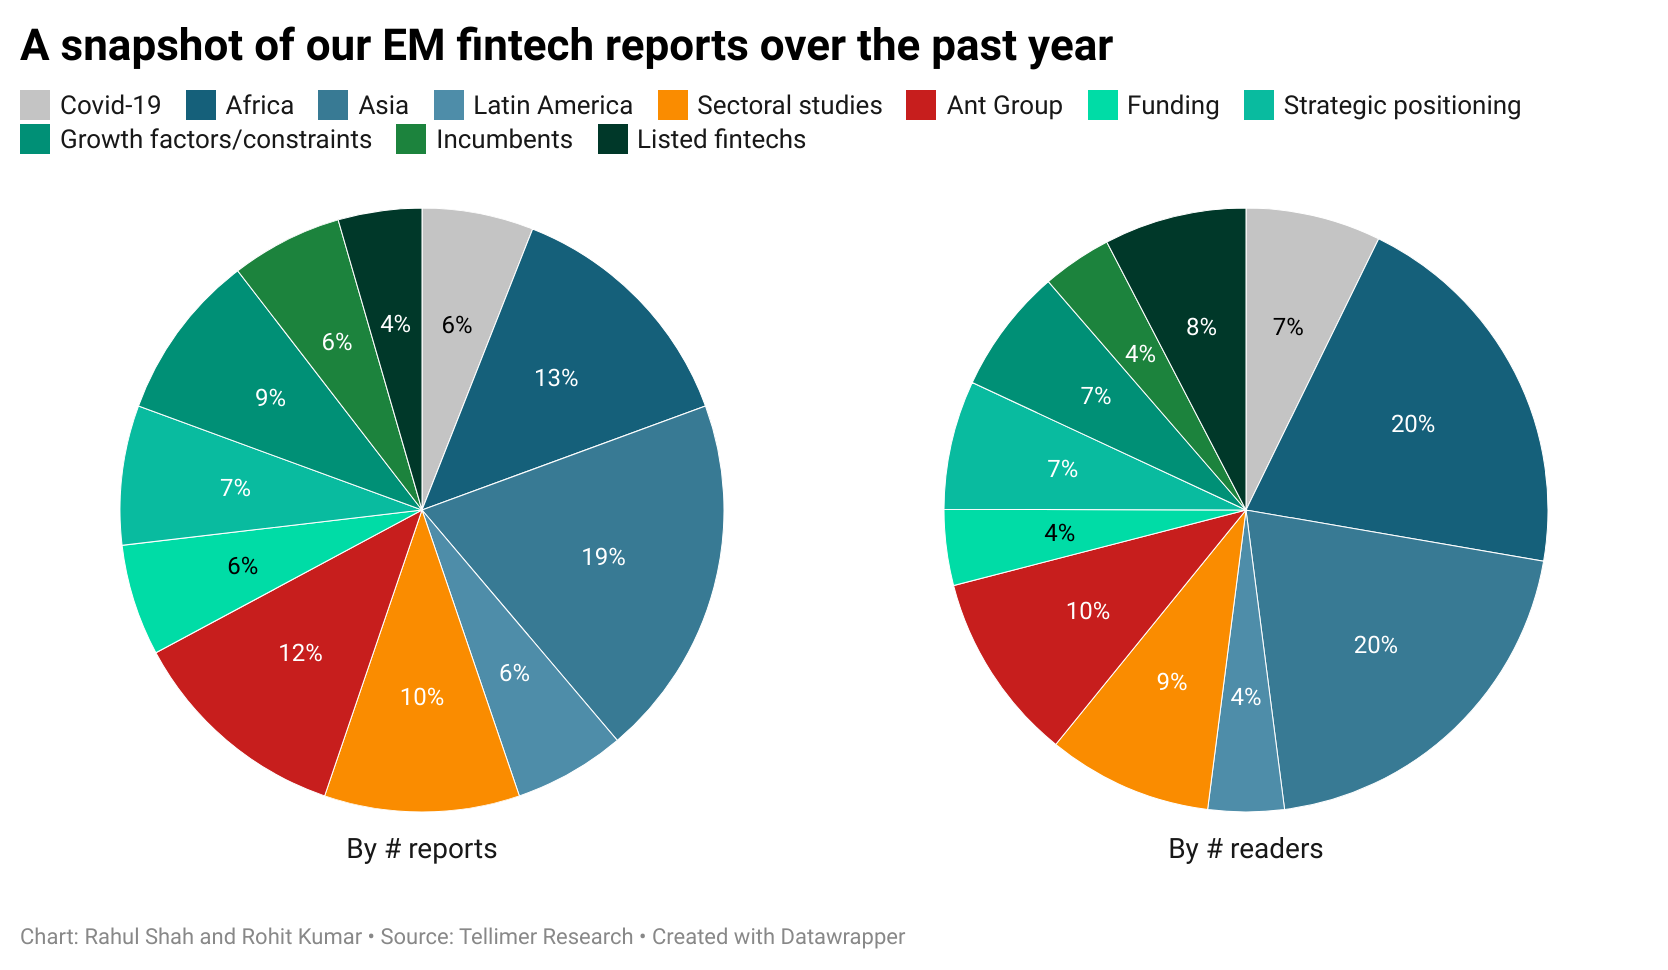 A snapshot of our EM fintech reports over the past year